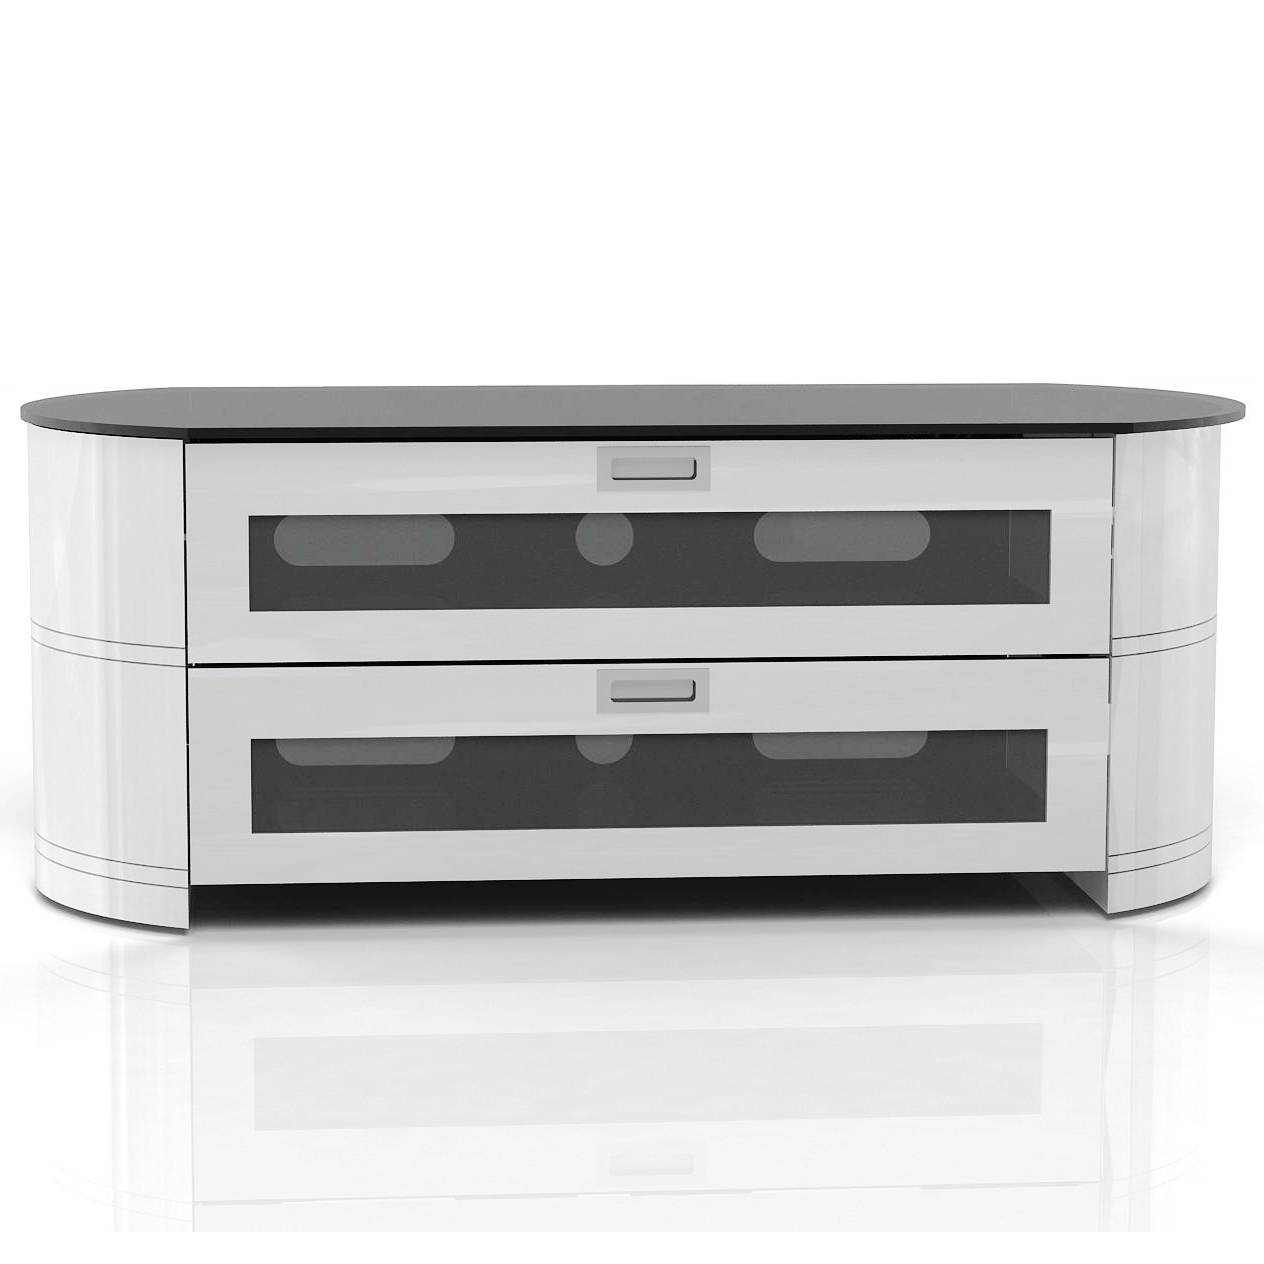 Tv Cabinets | Keko Furniture Inside White Oval Tv Stands (View 10 of 15)